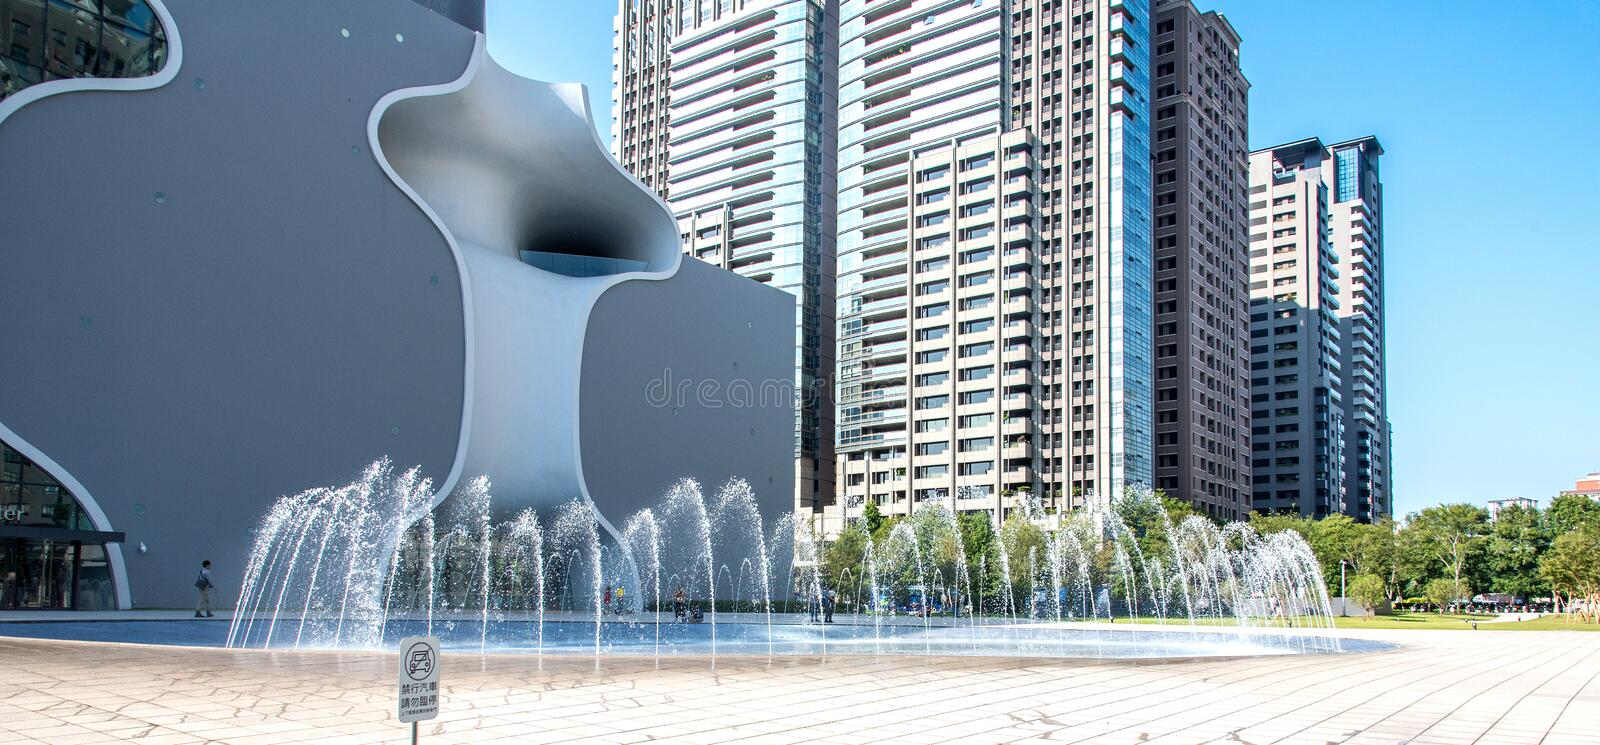 National Taichung Metropolitan Opera House, Taichung Theater, designed by Architect Toyo Ito. Taichung, TaiwanR.O.C - October 01, 2018 - National Taichung royalty free stock images